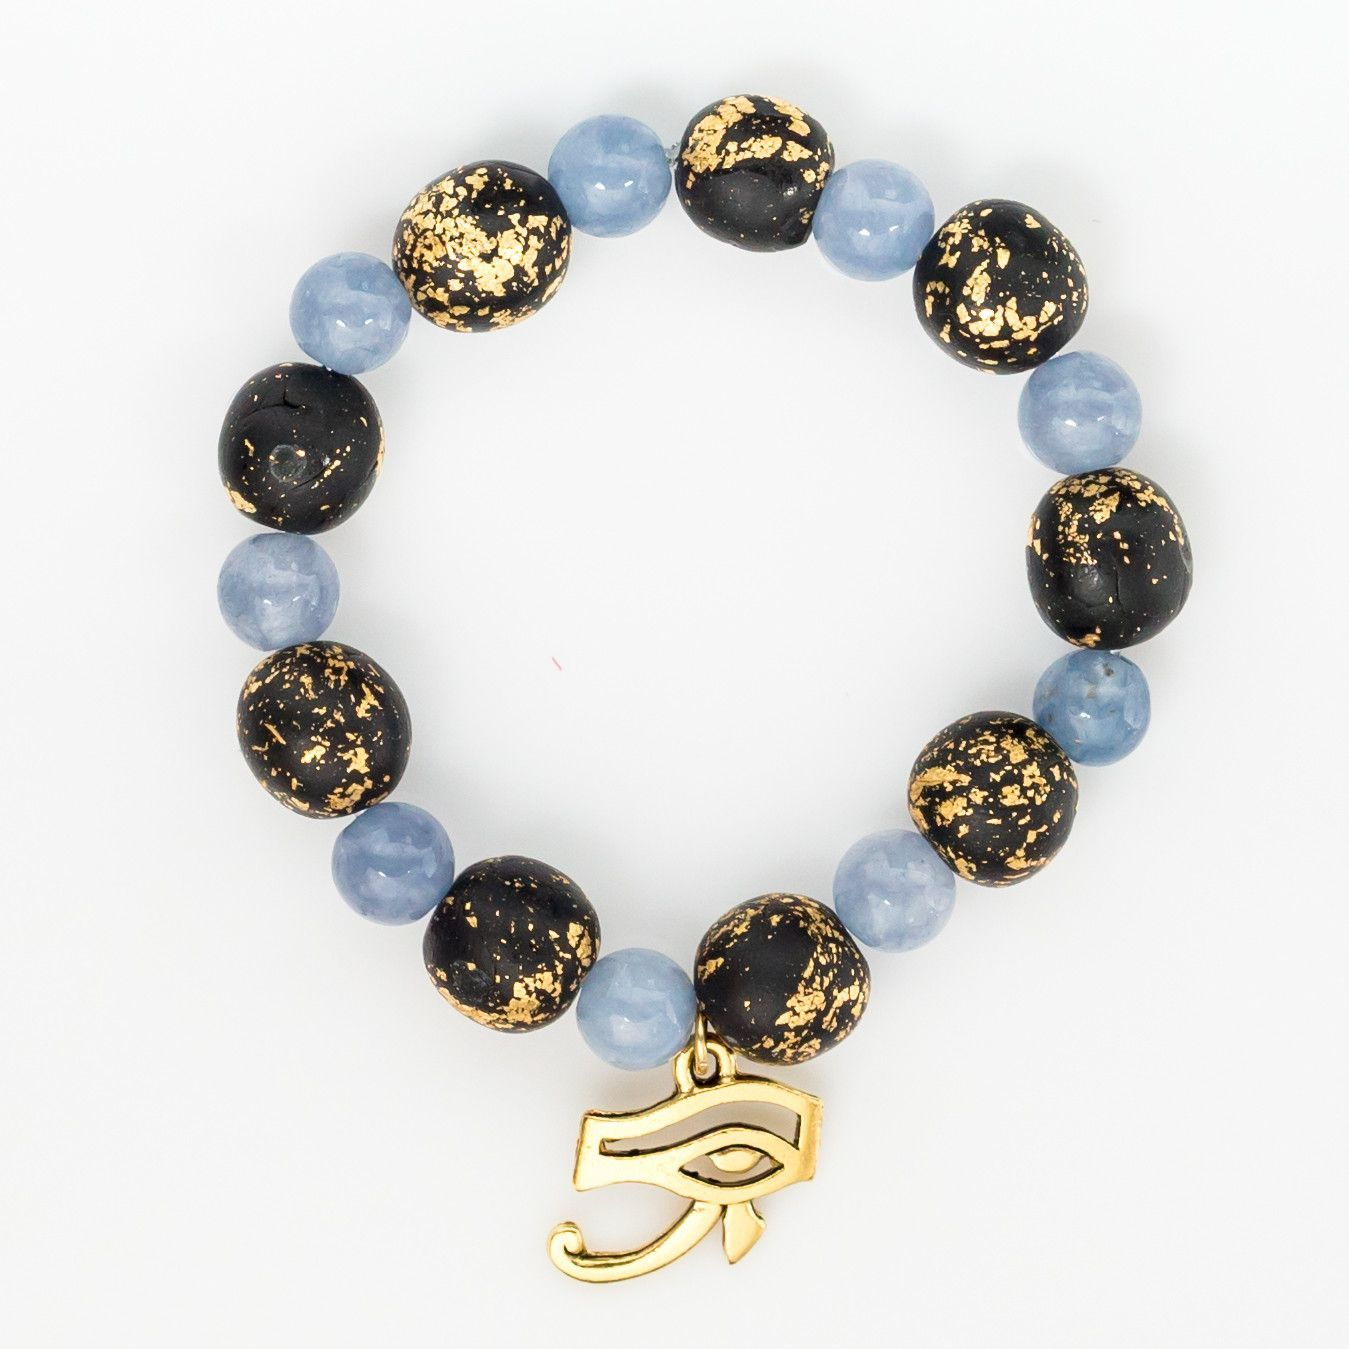 Aquamarine Eye Of Horus Bracelet Protection Eye Of Horus Bracelets Jewelry